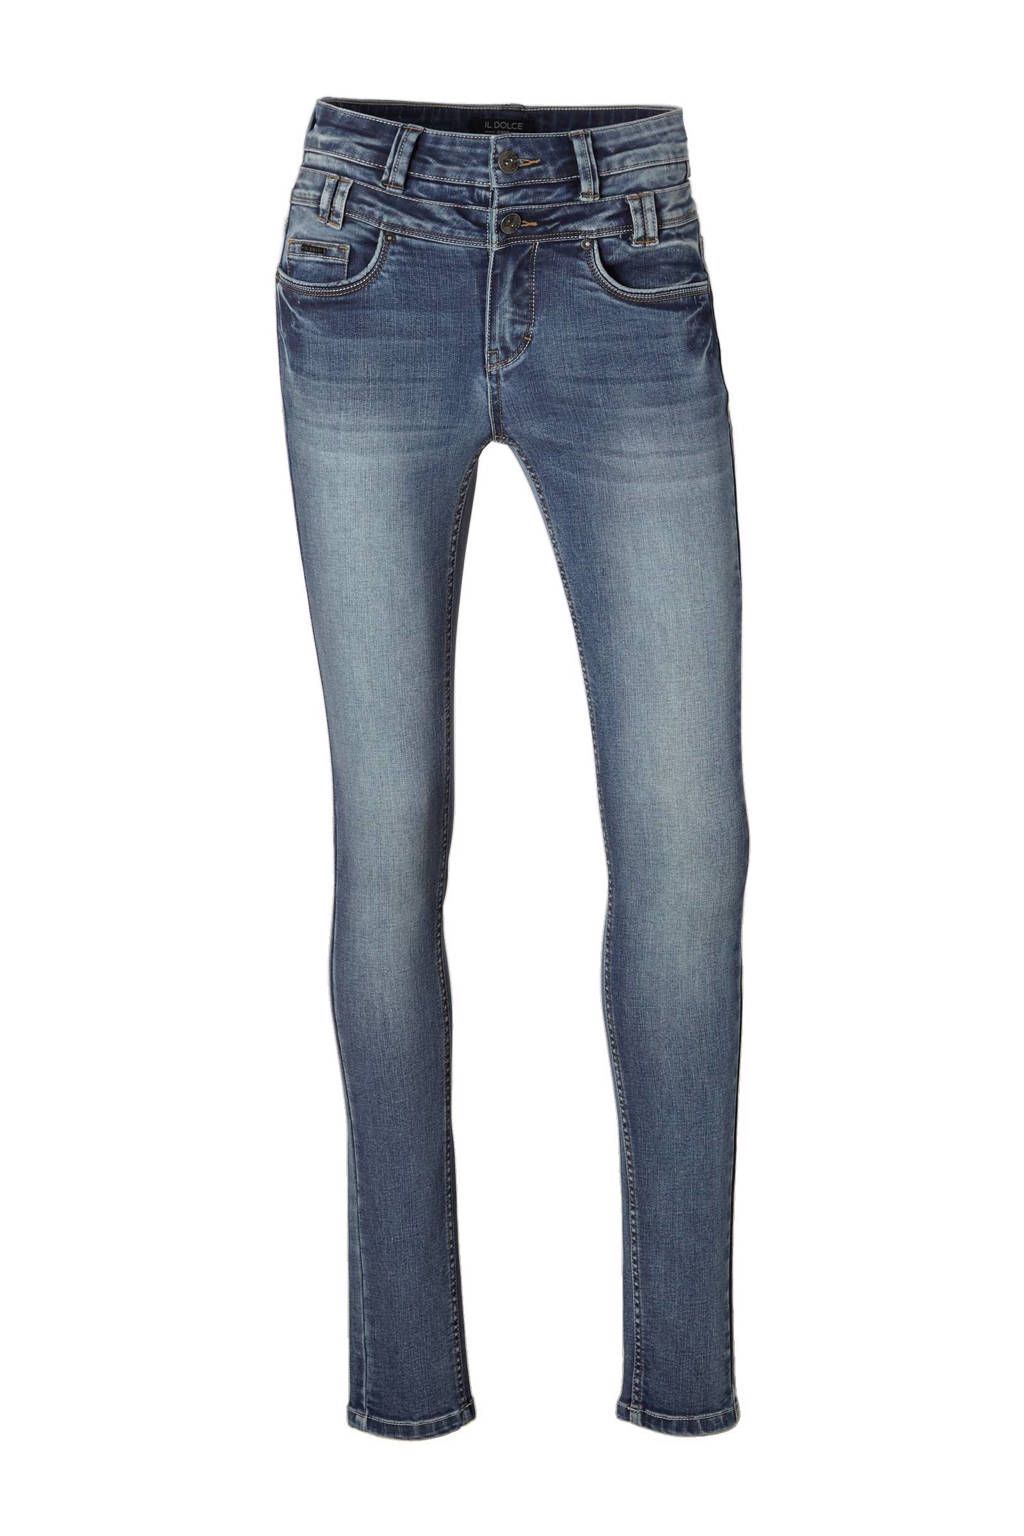 Il Dolce Ibiza high waist slim fit jeans, blue lake